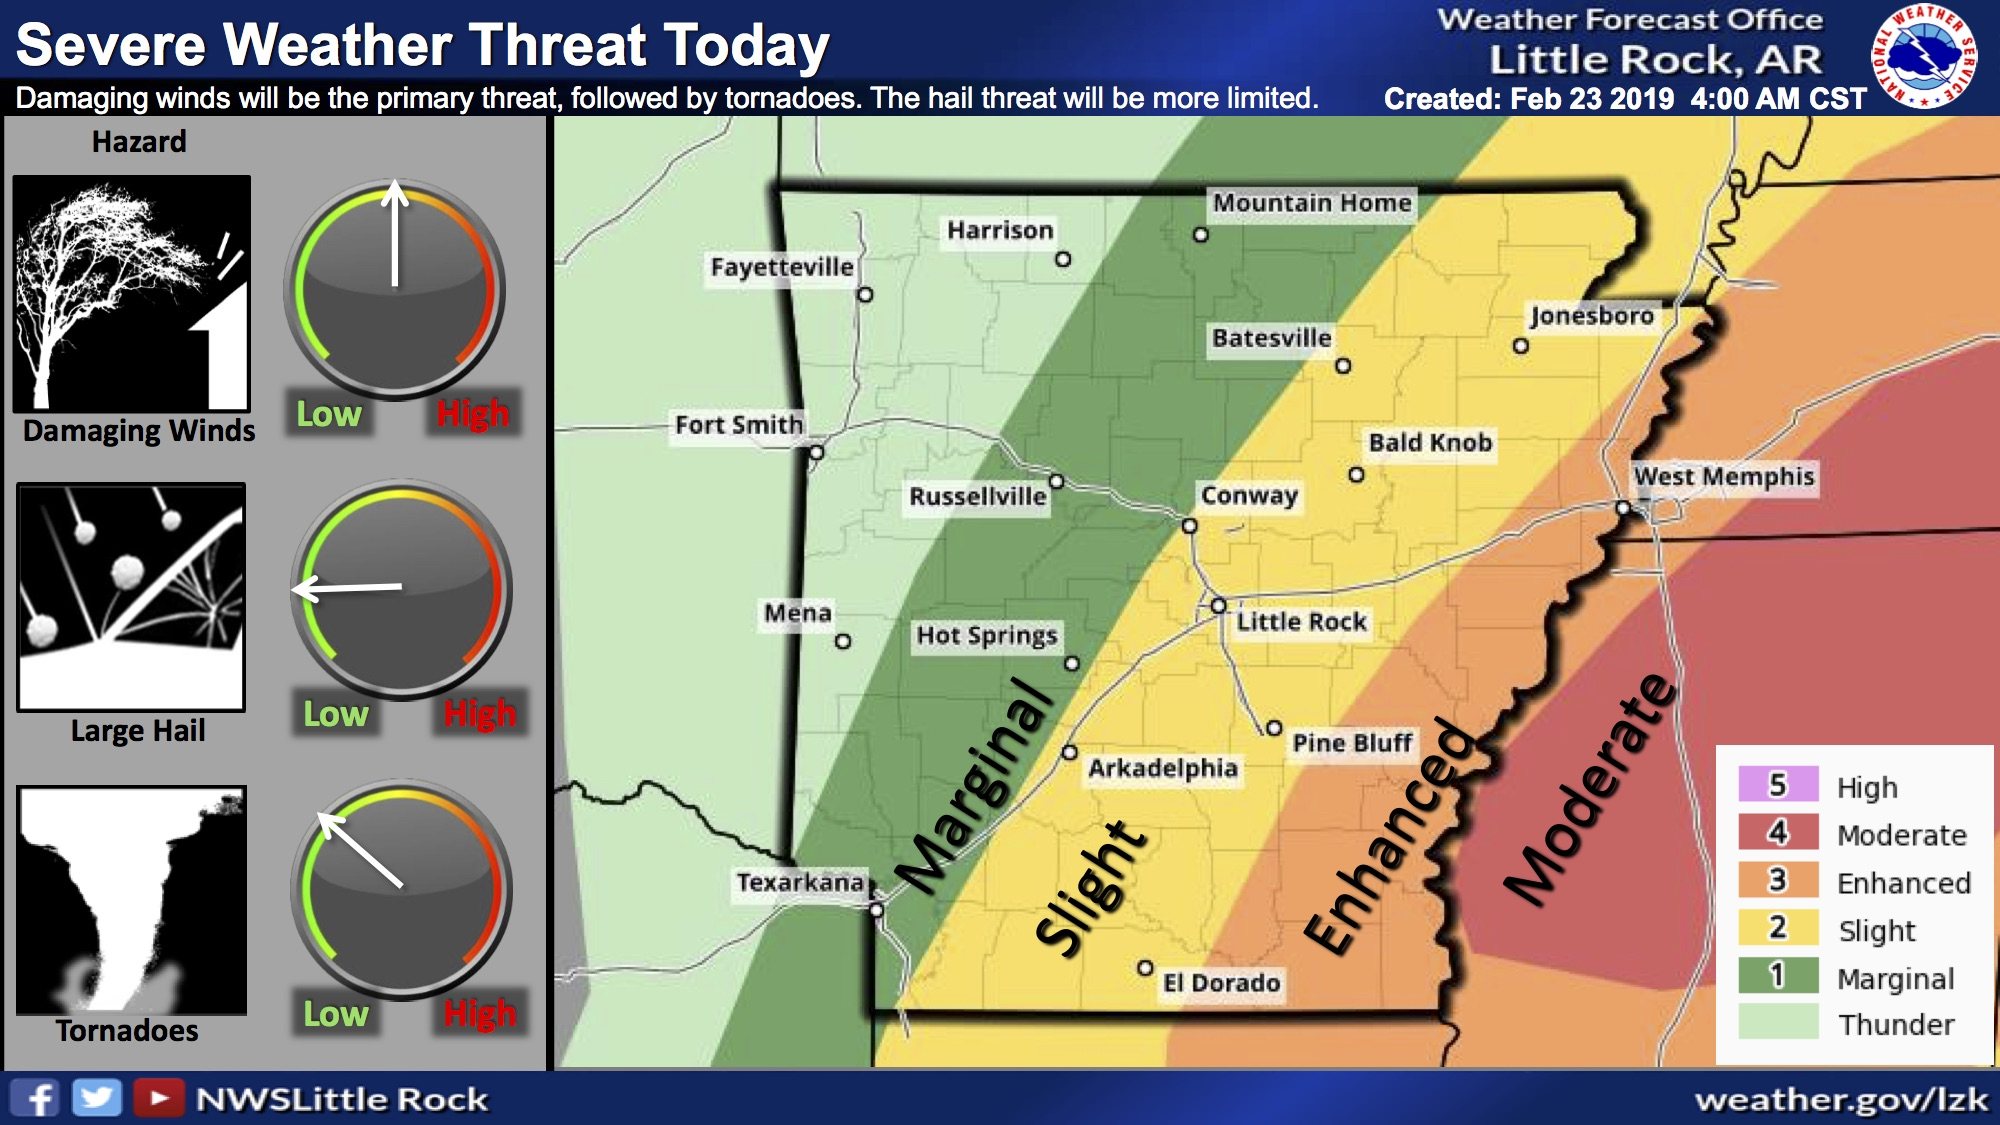 Forecasters: Chance for heavy winds, tornadoes, flooding today in parts of Arkansas | Arkansas Democrat-Gazette